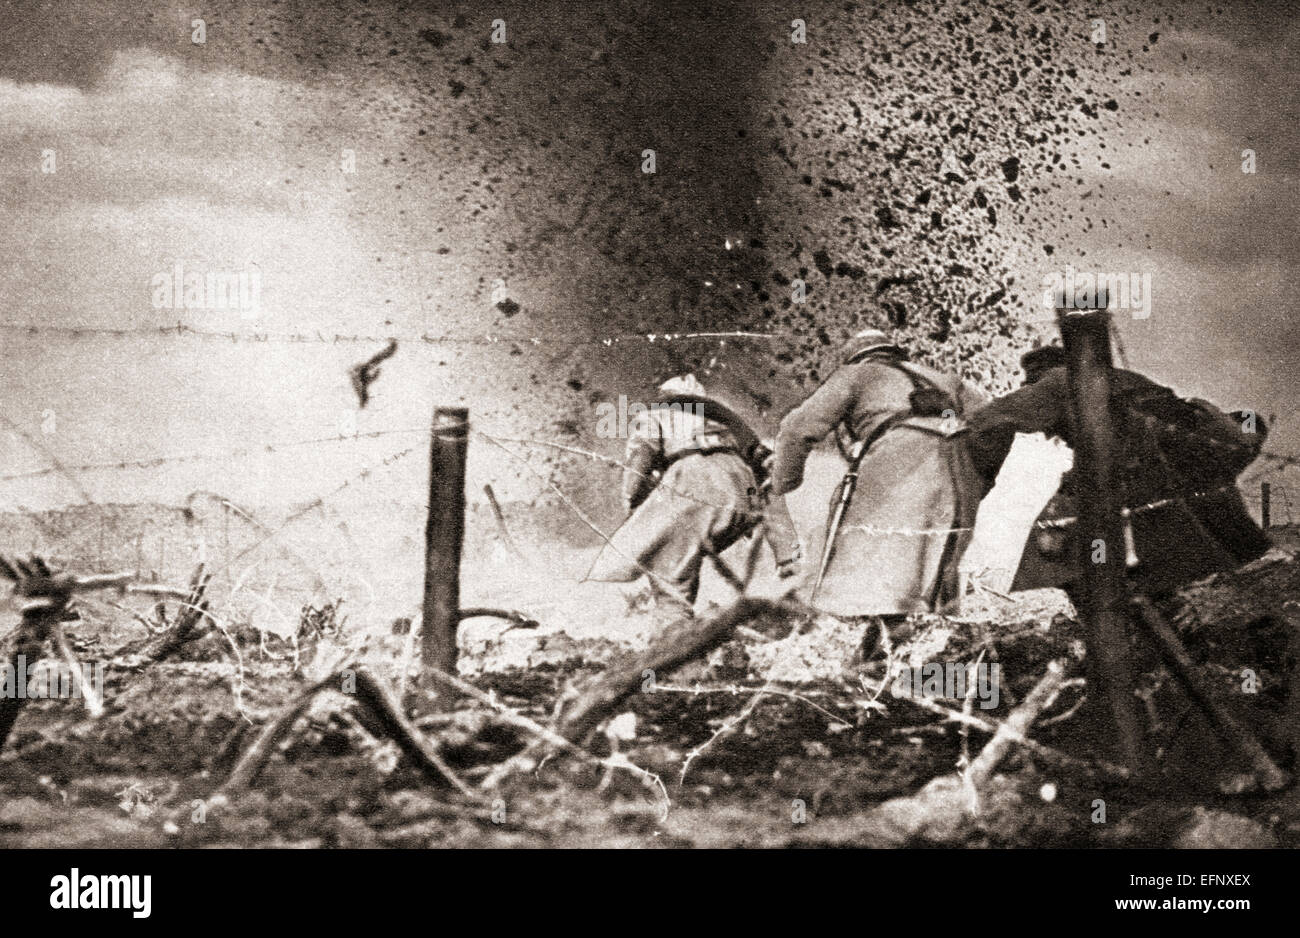 A high explosive shell exploding over French troops during World War One. - Stock Image